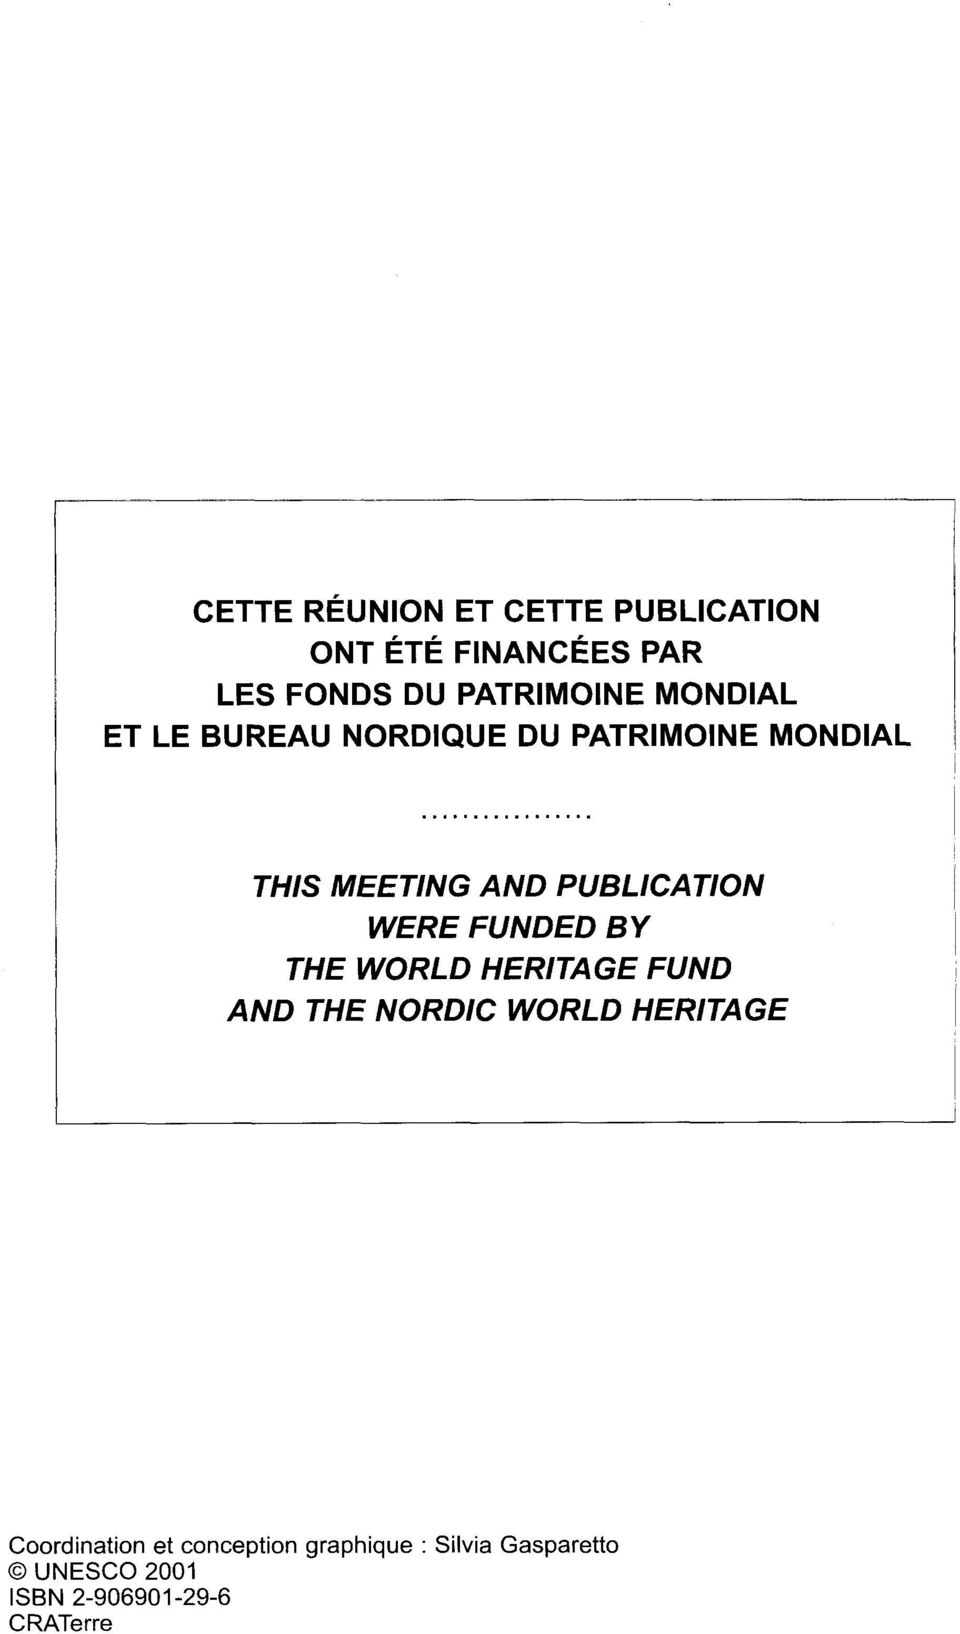 .. THIS MEETING AND PUBLICATION WERE FUNDED BY THE WORLD HERITAGE FUND AND THE